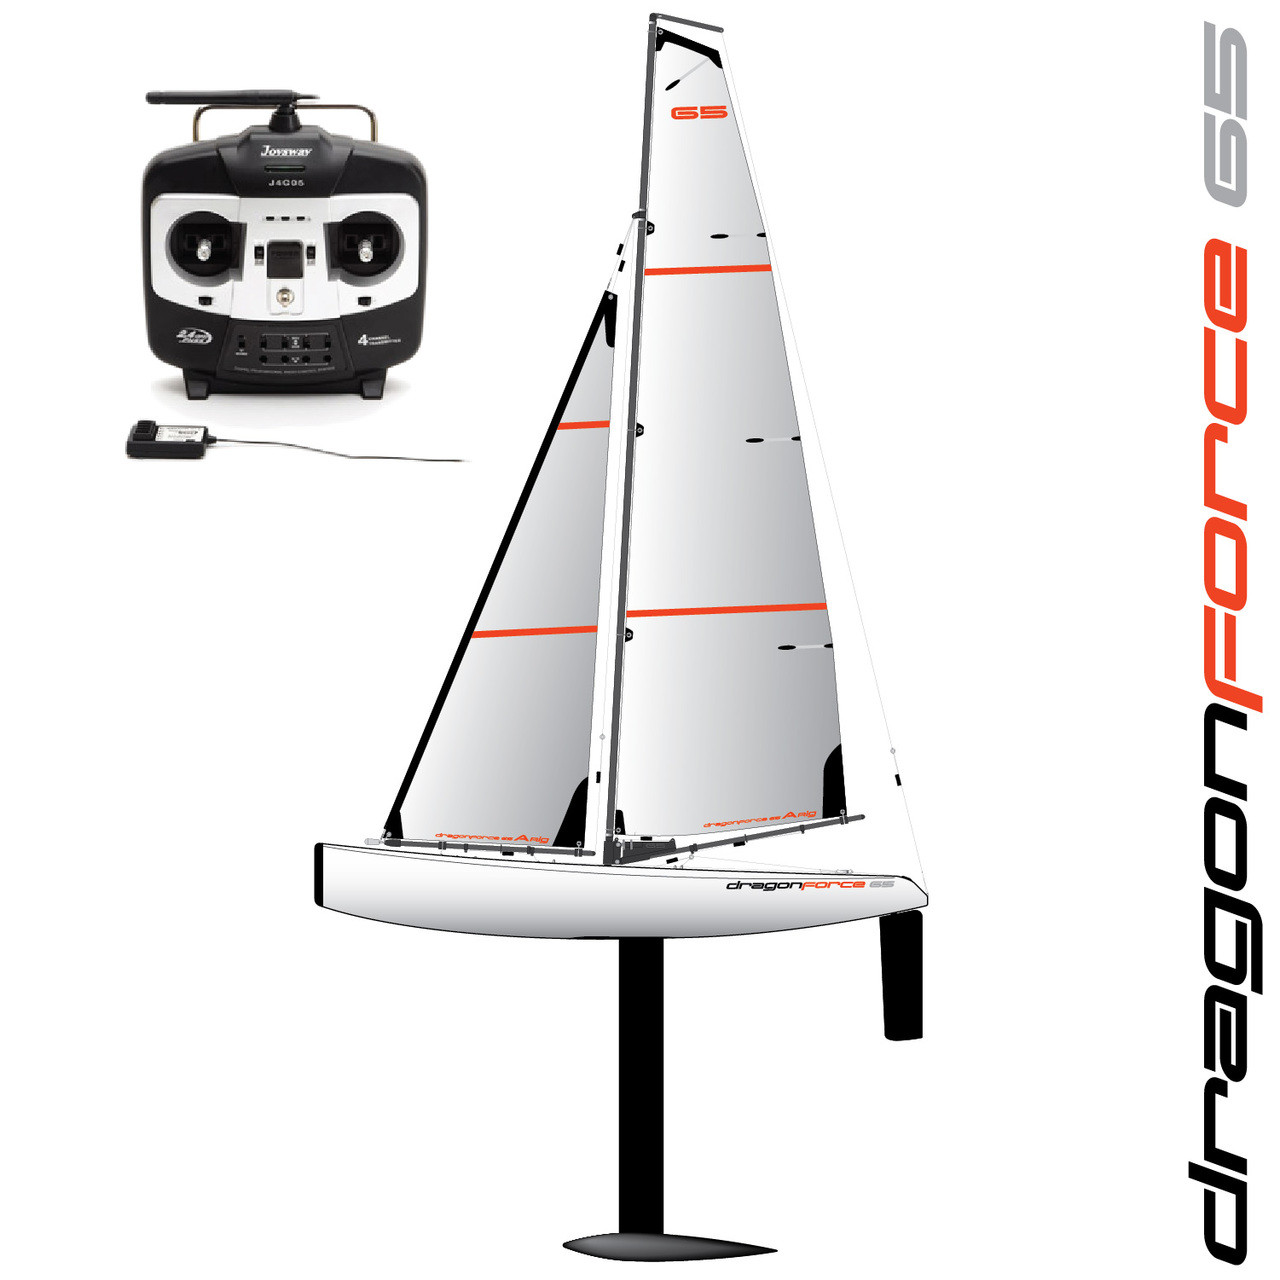 DragonForce 65 DF65 Class RC Sailboat 650mm